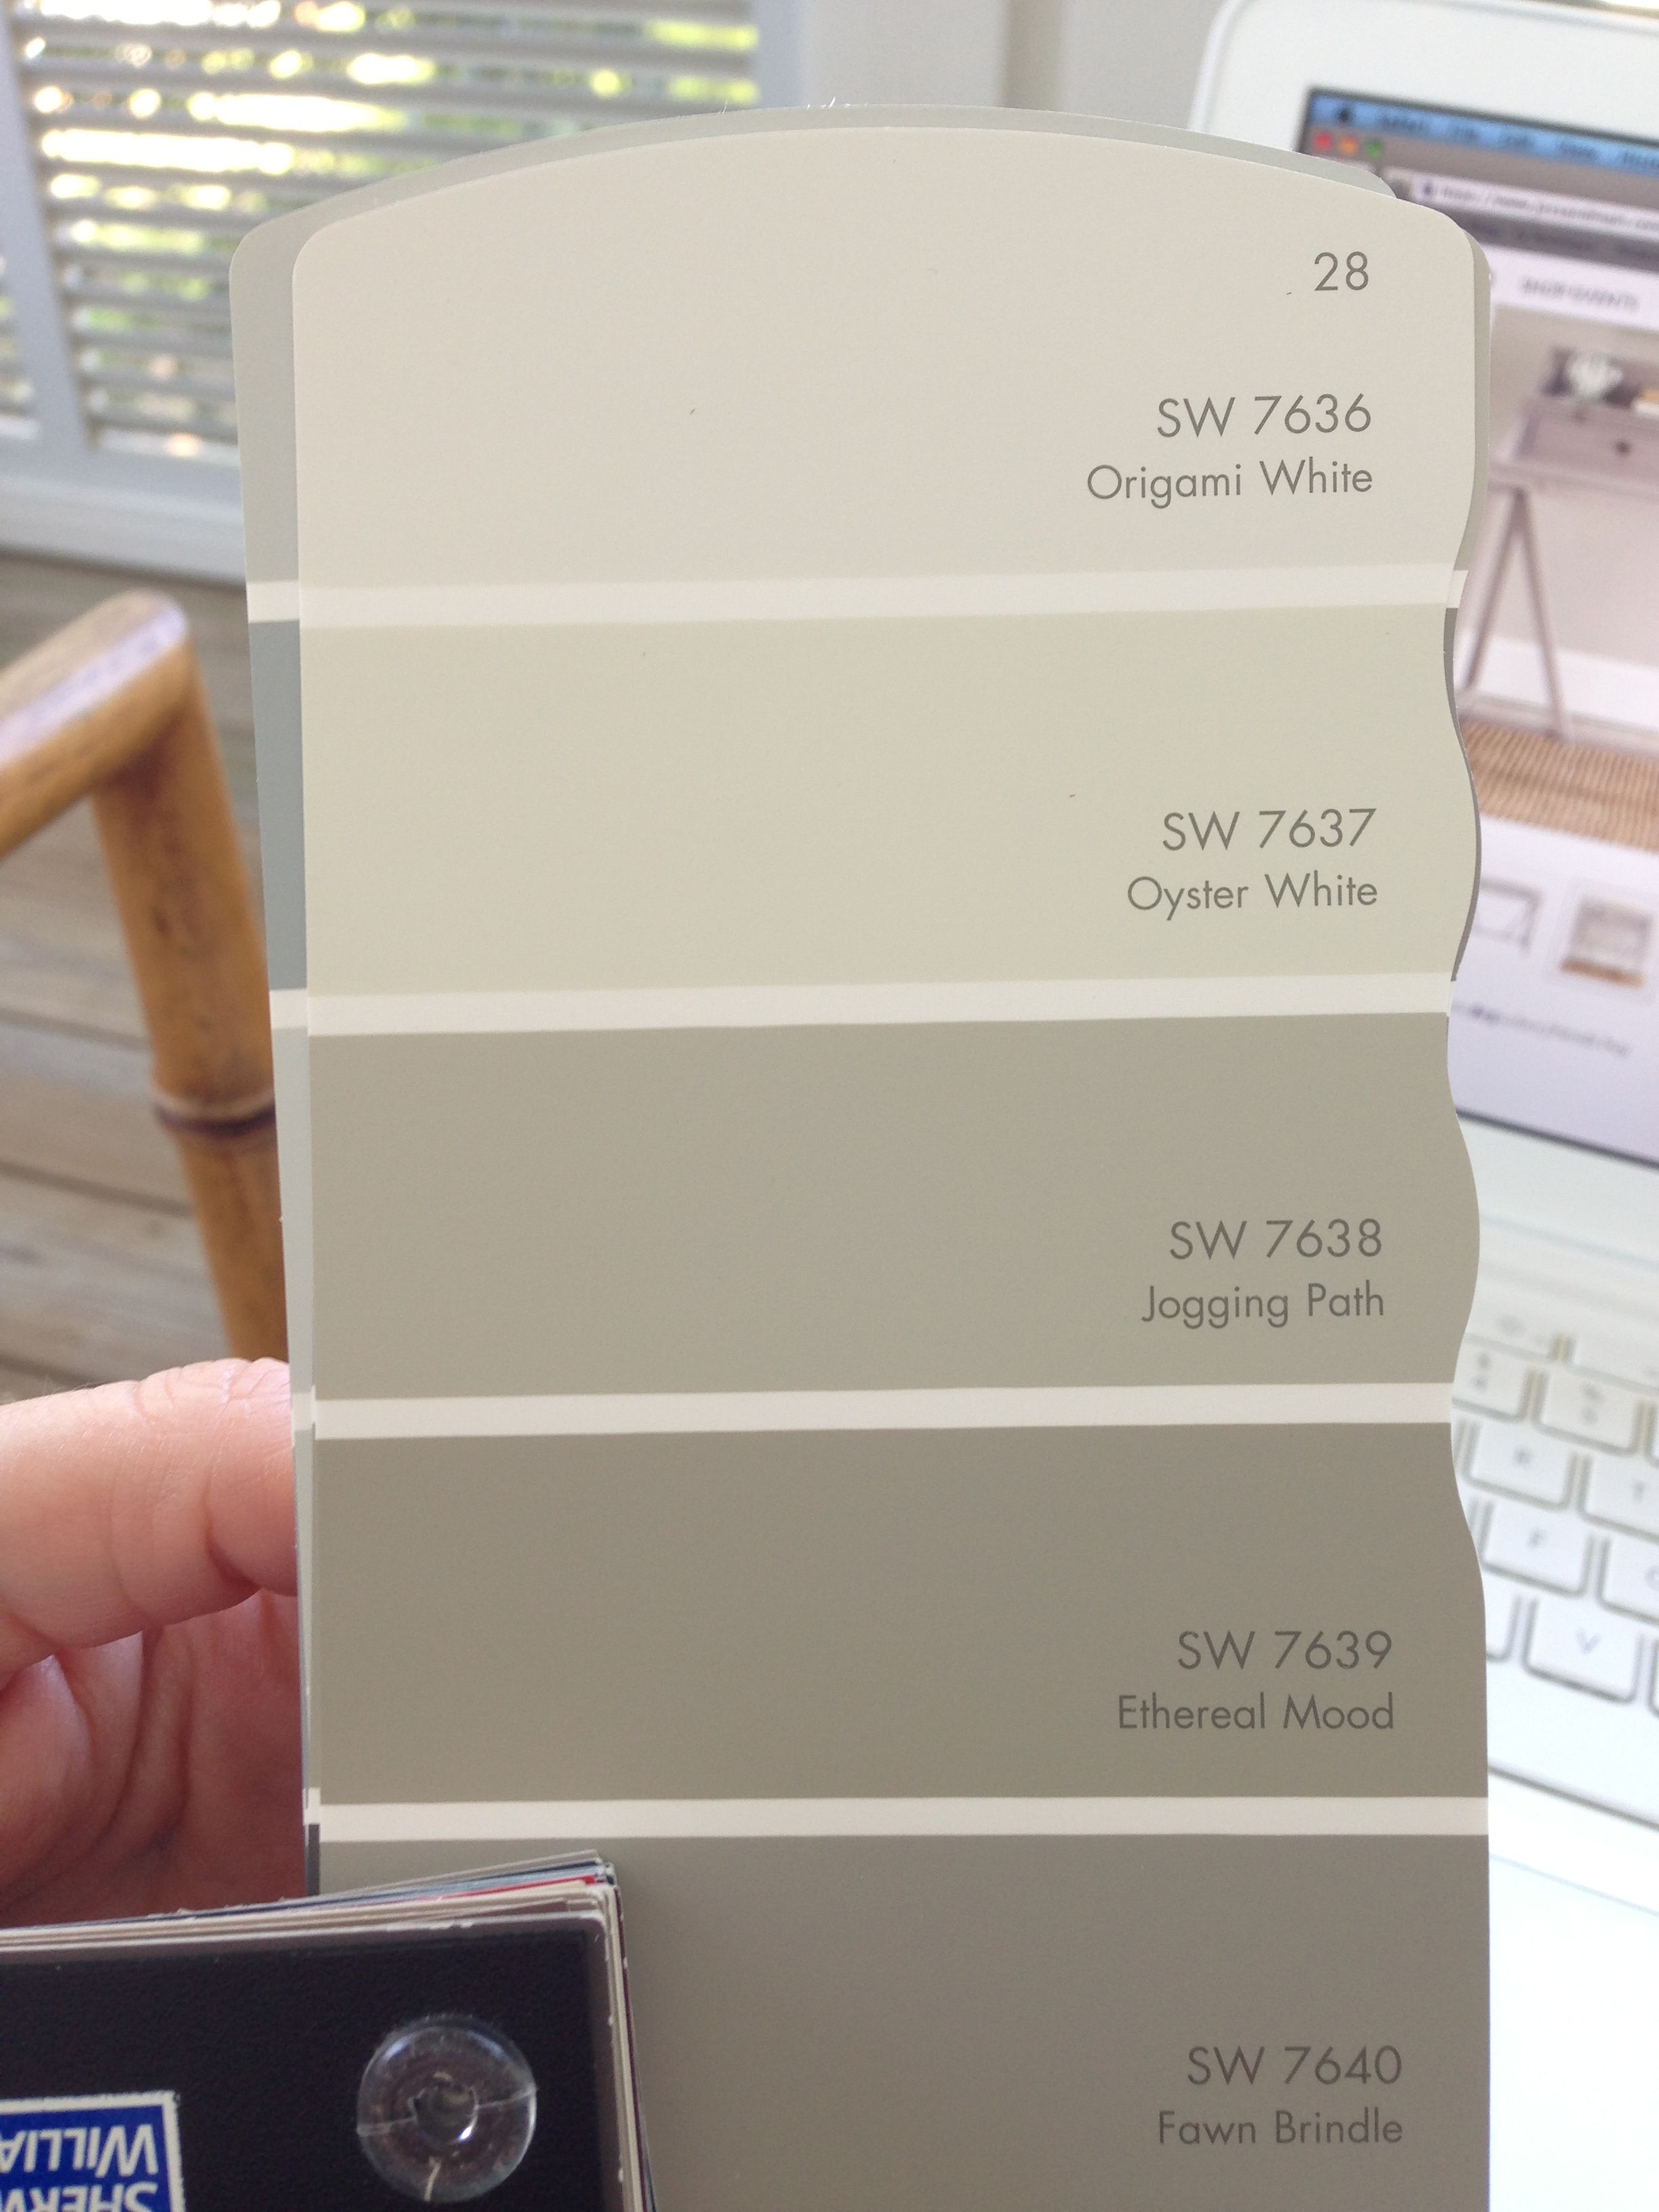 Sw Ethereal Mood Paint Card Oyster White For Brick Jogging Path For Shutters Ethereal Mood For